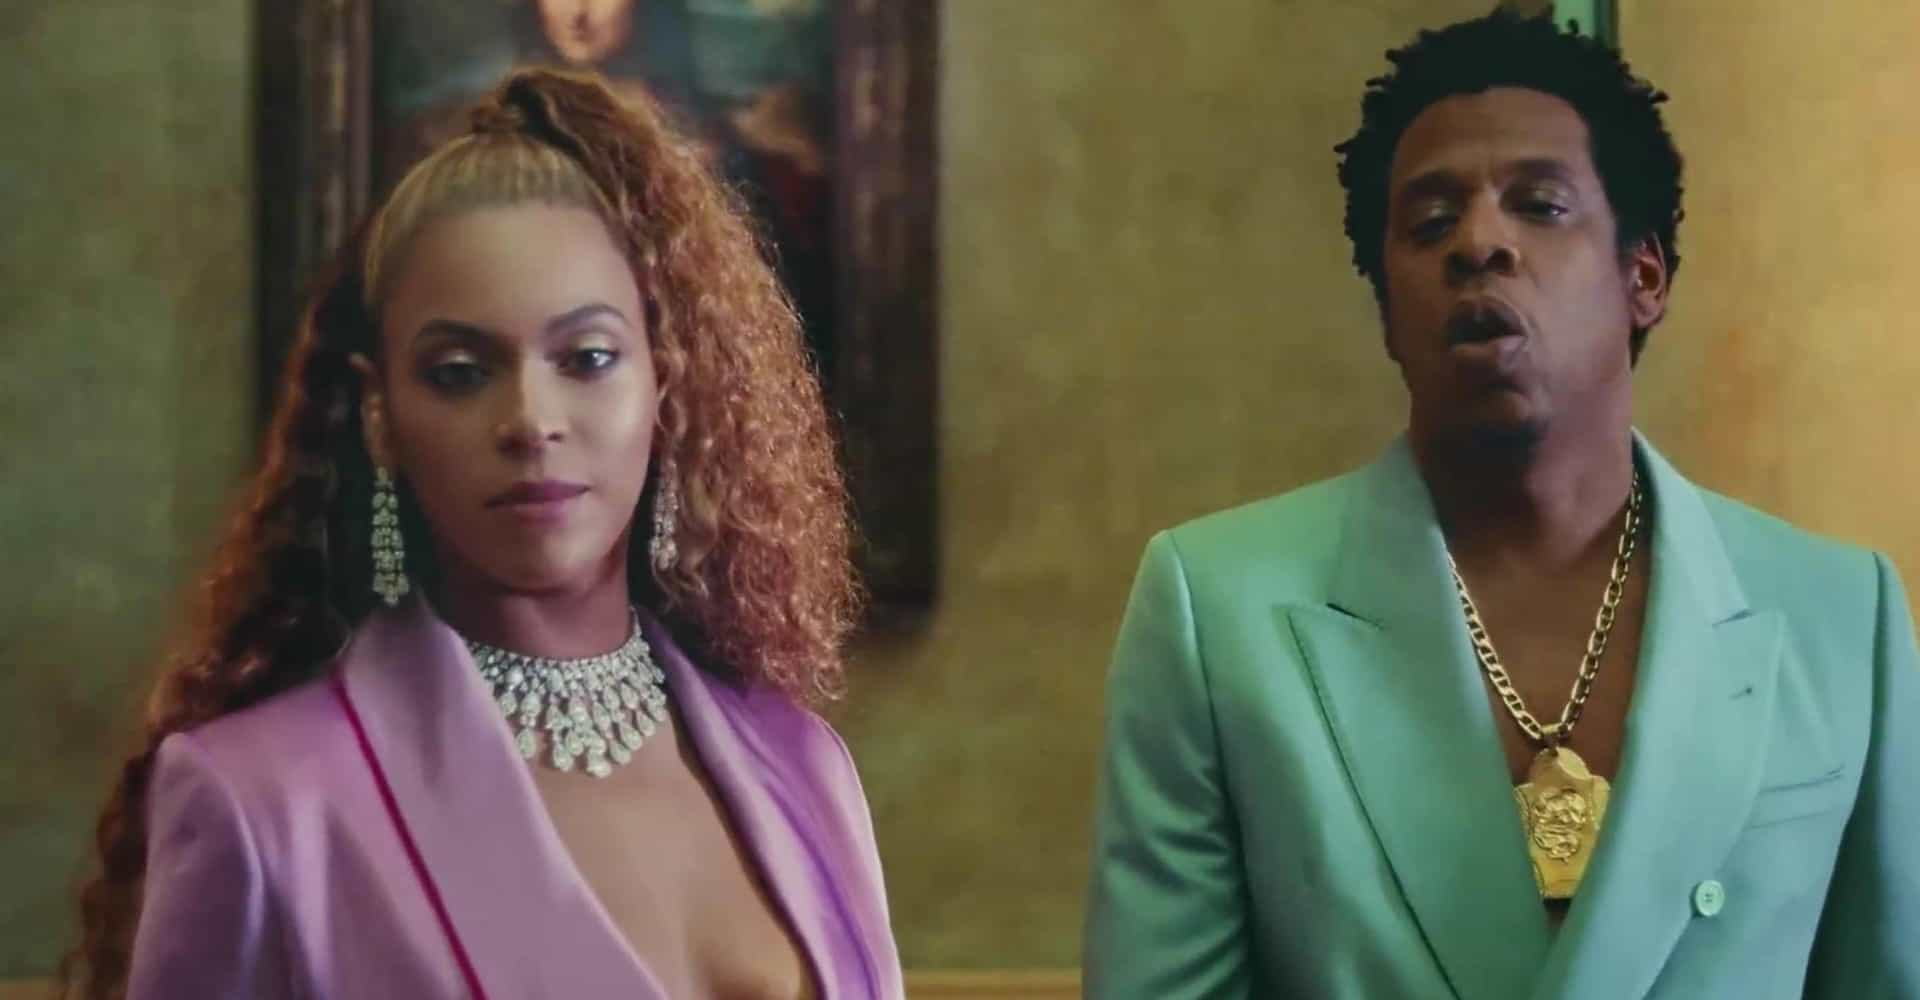 Beyoncé and Jay-Z helped the Louvre break a world record